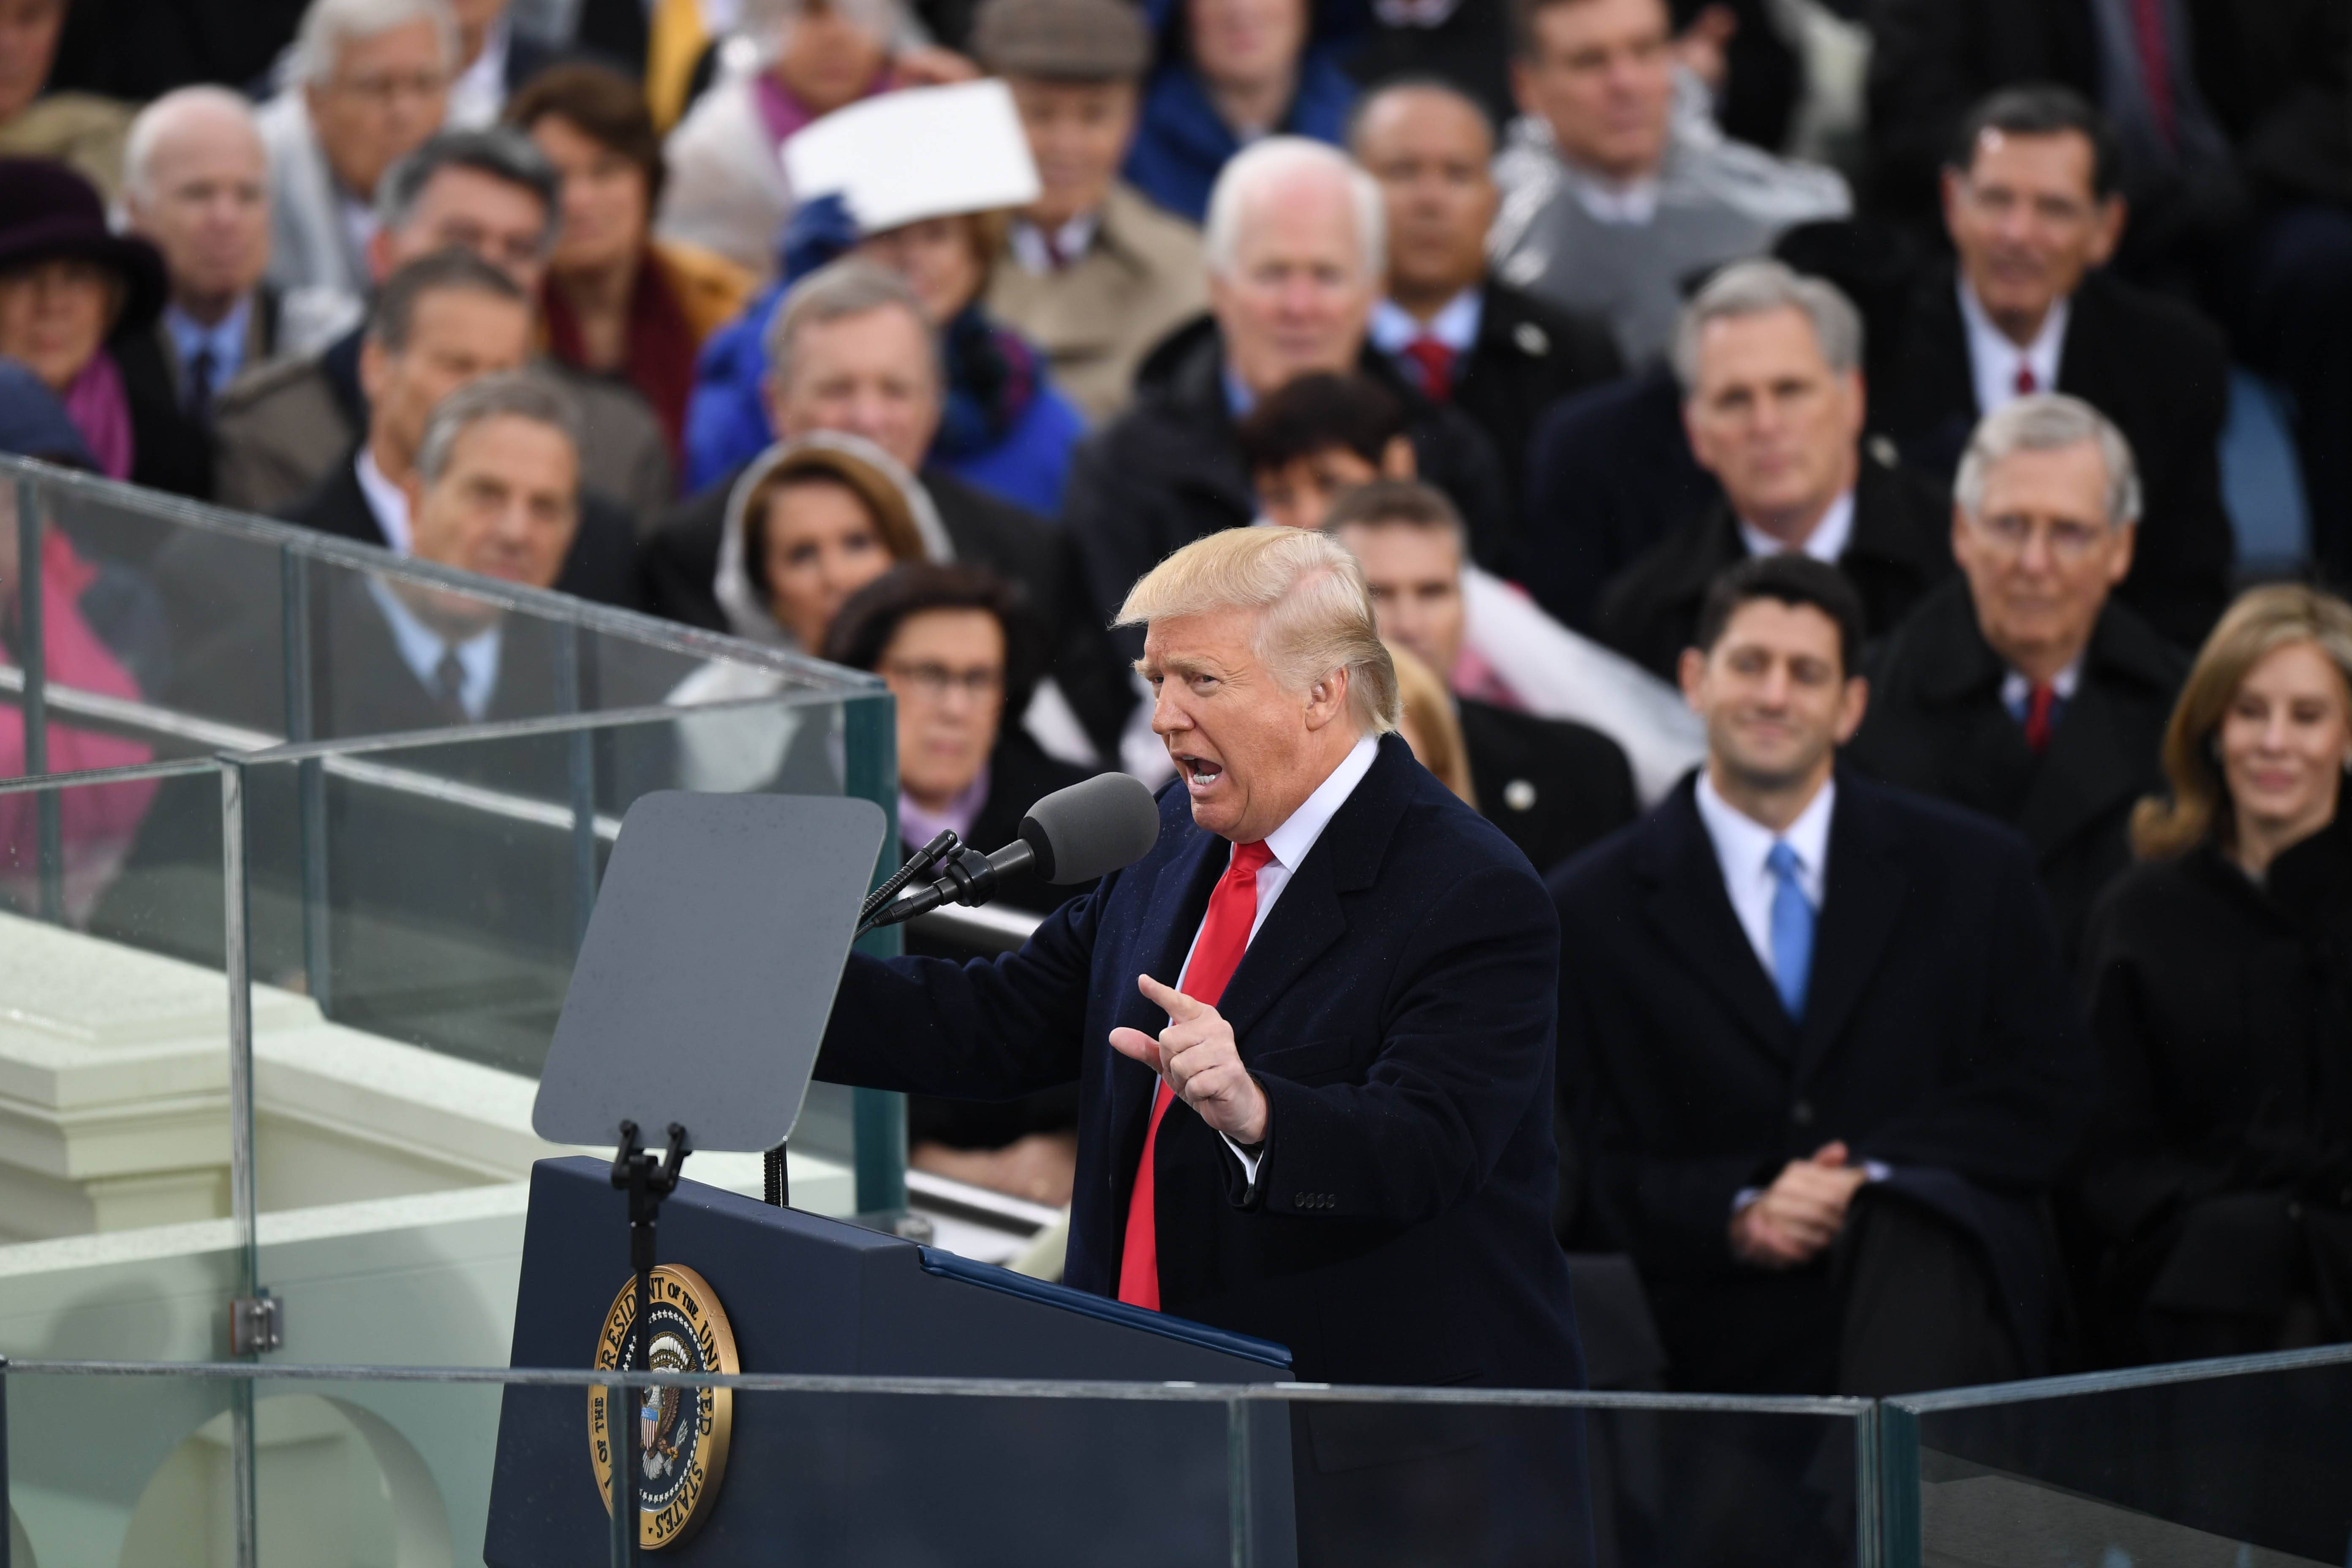 President Trump delivers his inaugural address.